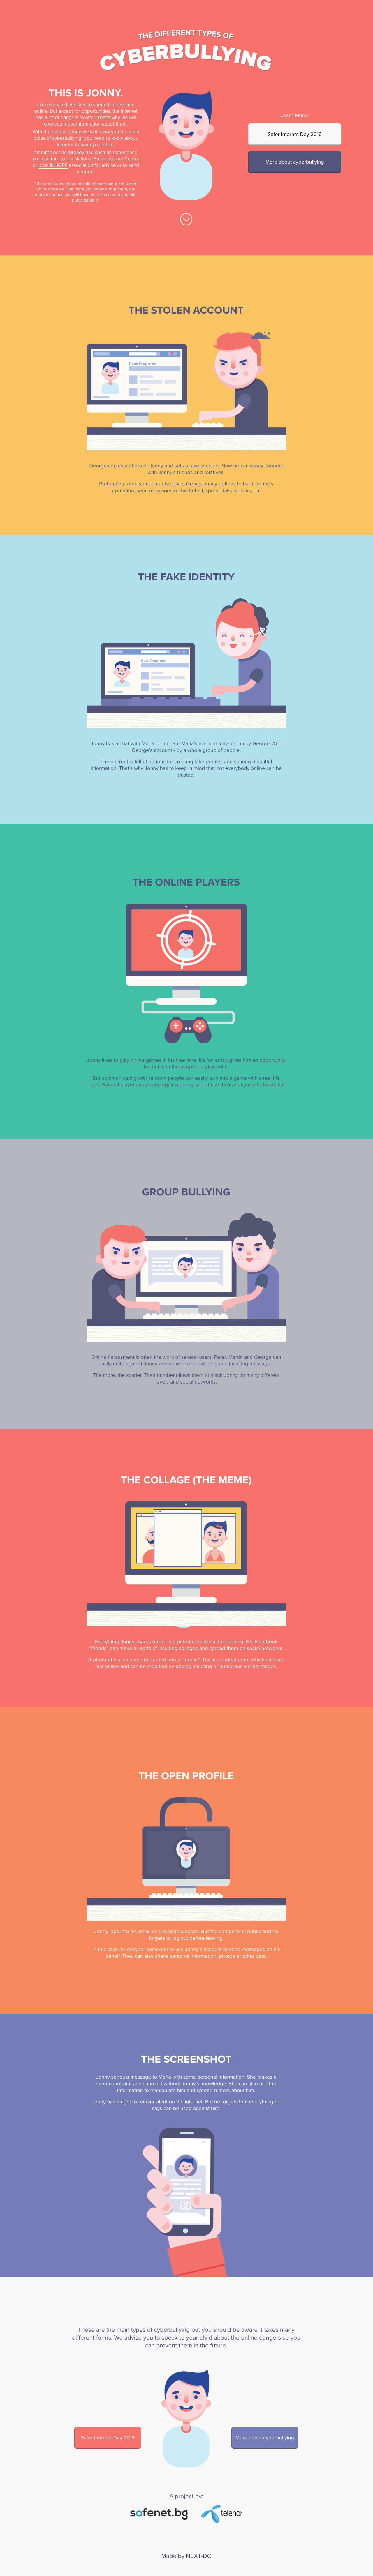 Guide to the types of cyberbullying Website Screenshot